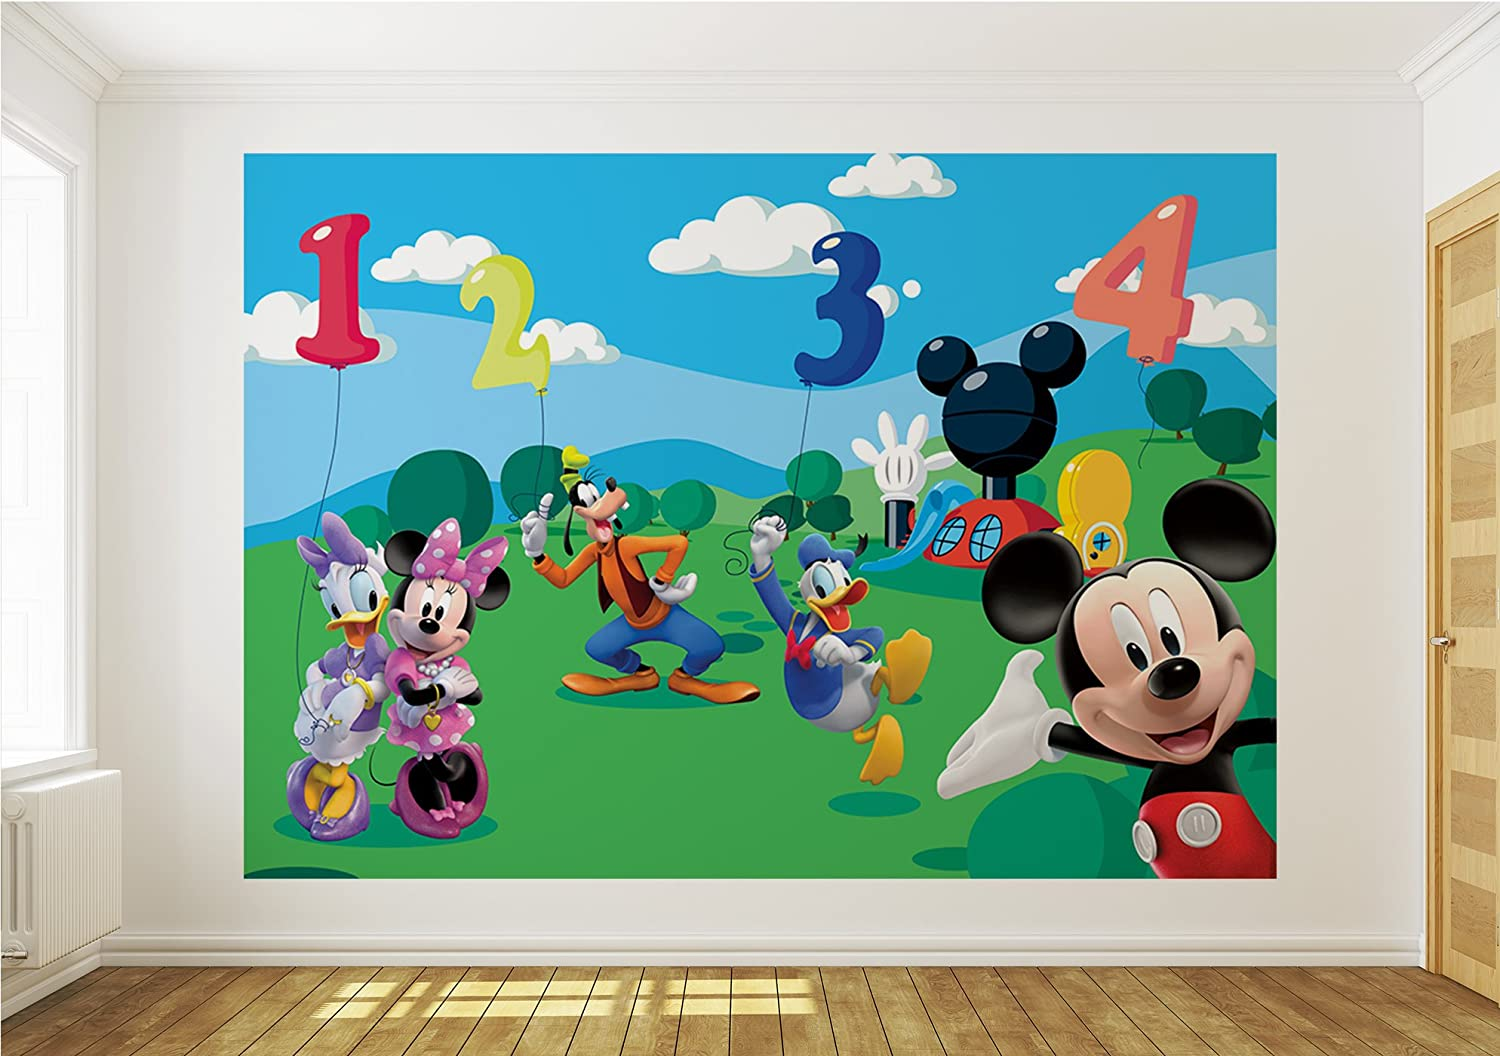 Wallpaper Mural MICKEY MOUSE Fleece Photo Wallpaper Kids Wall Murals  (4 029VE) (5. (310x219cm) (WxH) XXL  3 Panels): Amazon.co.uk: Kitchen U0026 Home Part 34